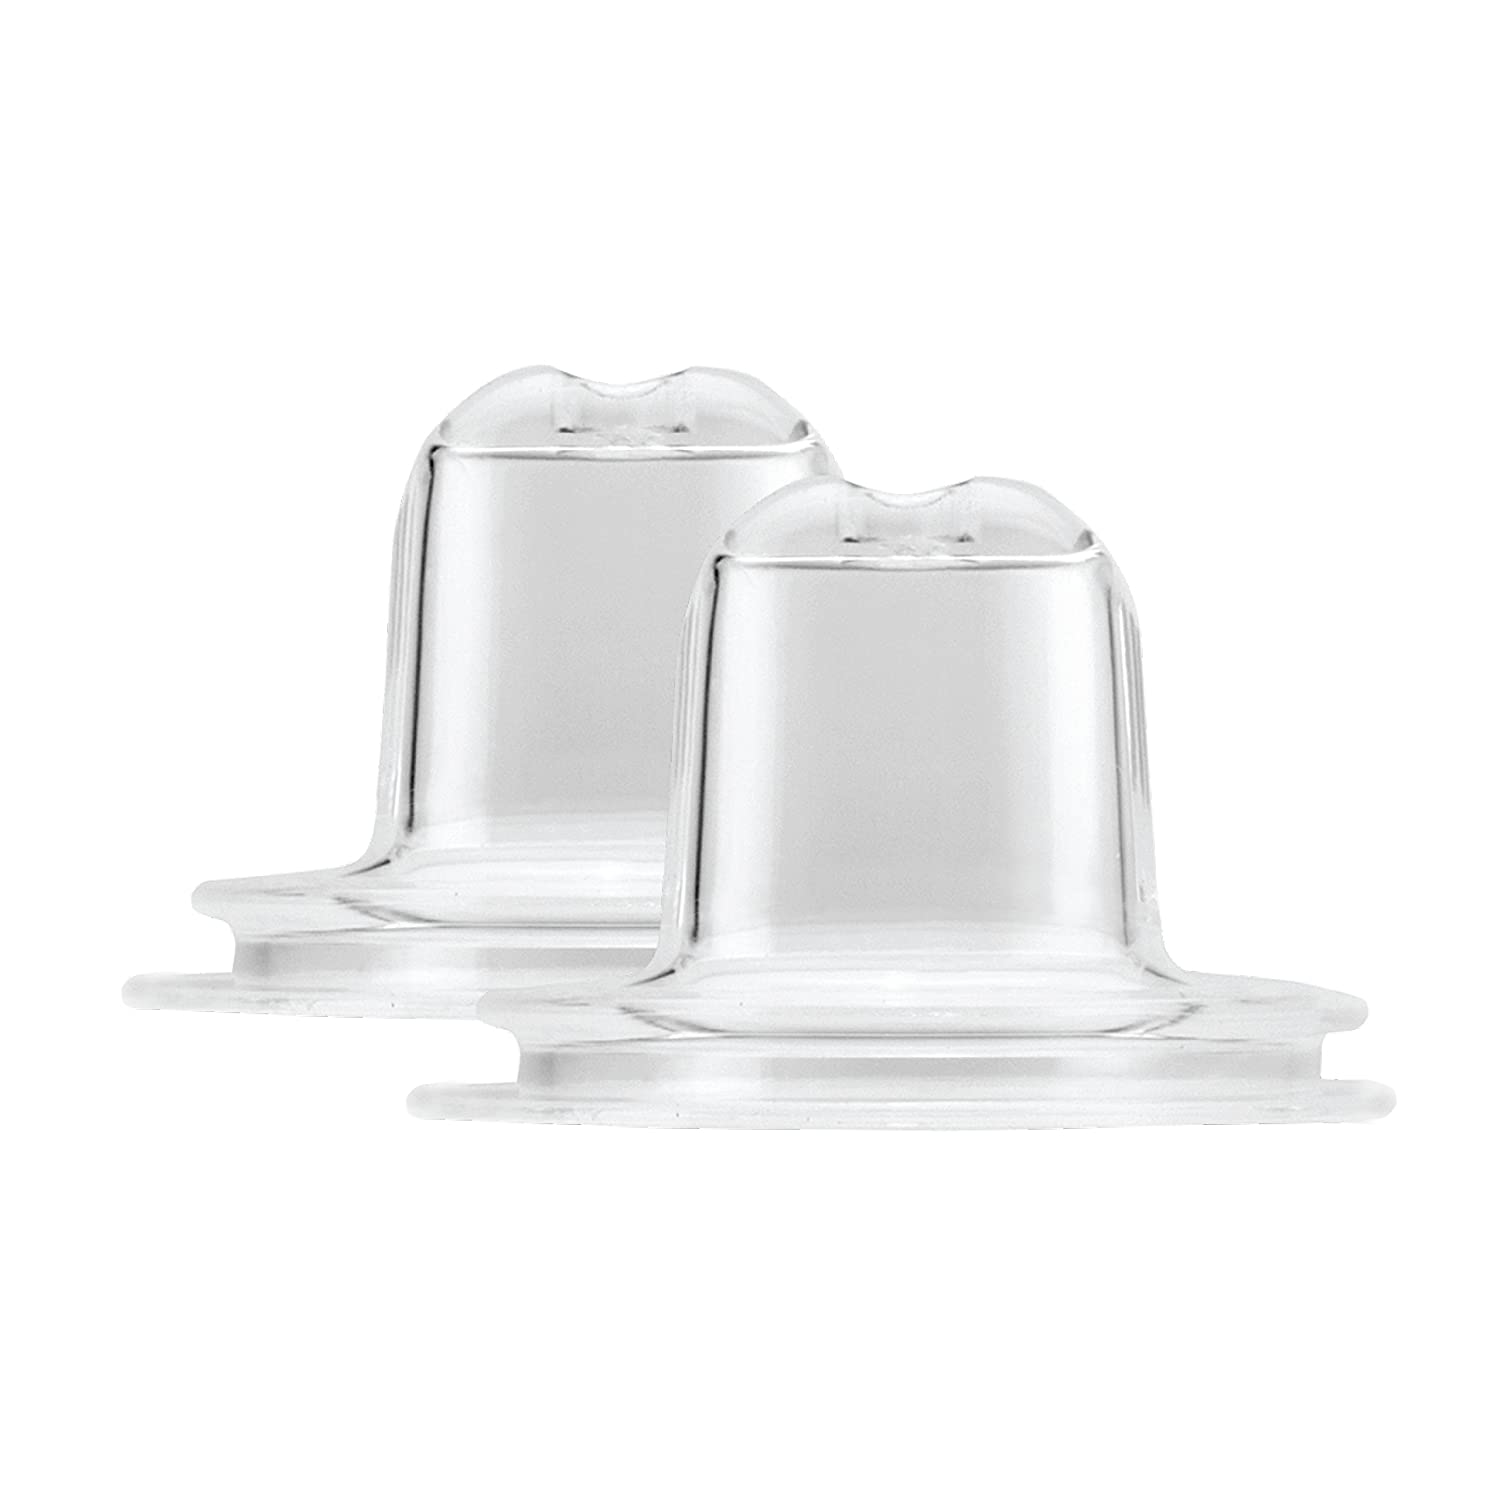 Dr. Brown's Wide-Neck Transition Sippy Spouts, 2-Piece Handi-Craft Company WR210-P4